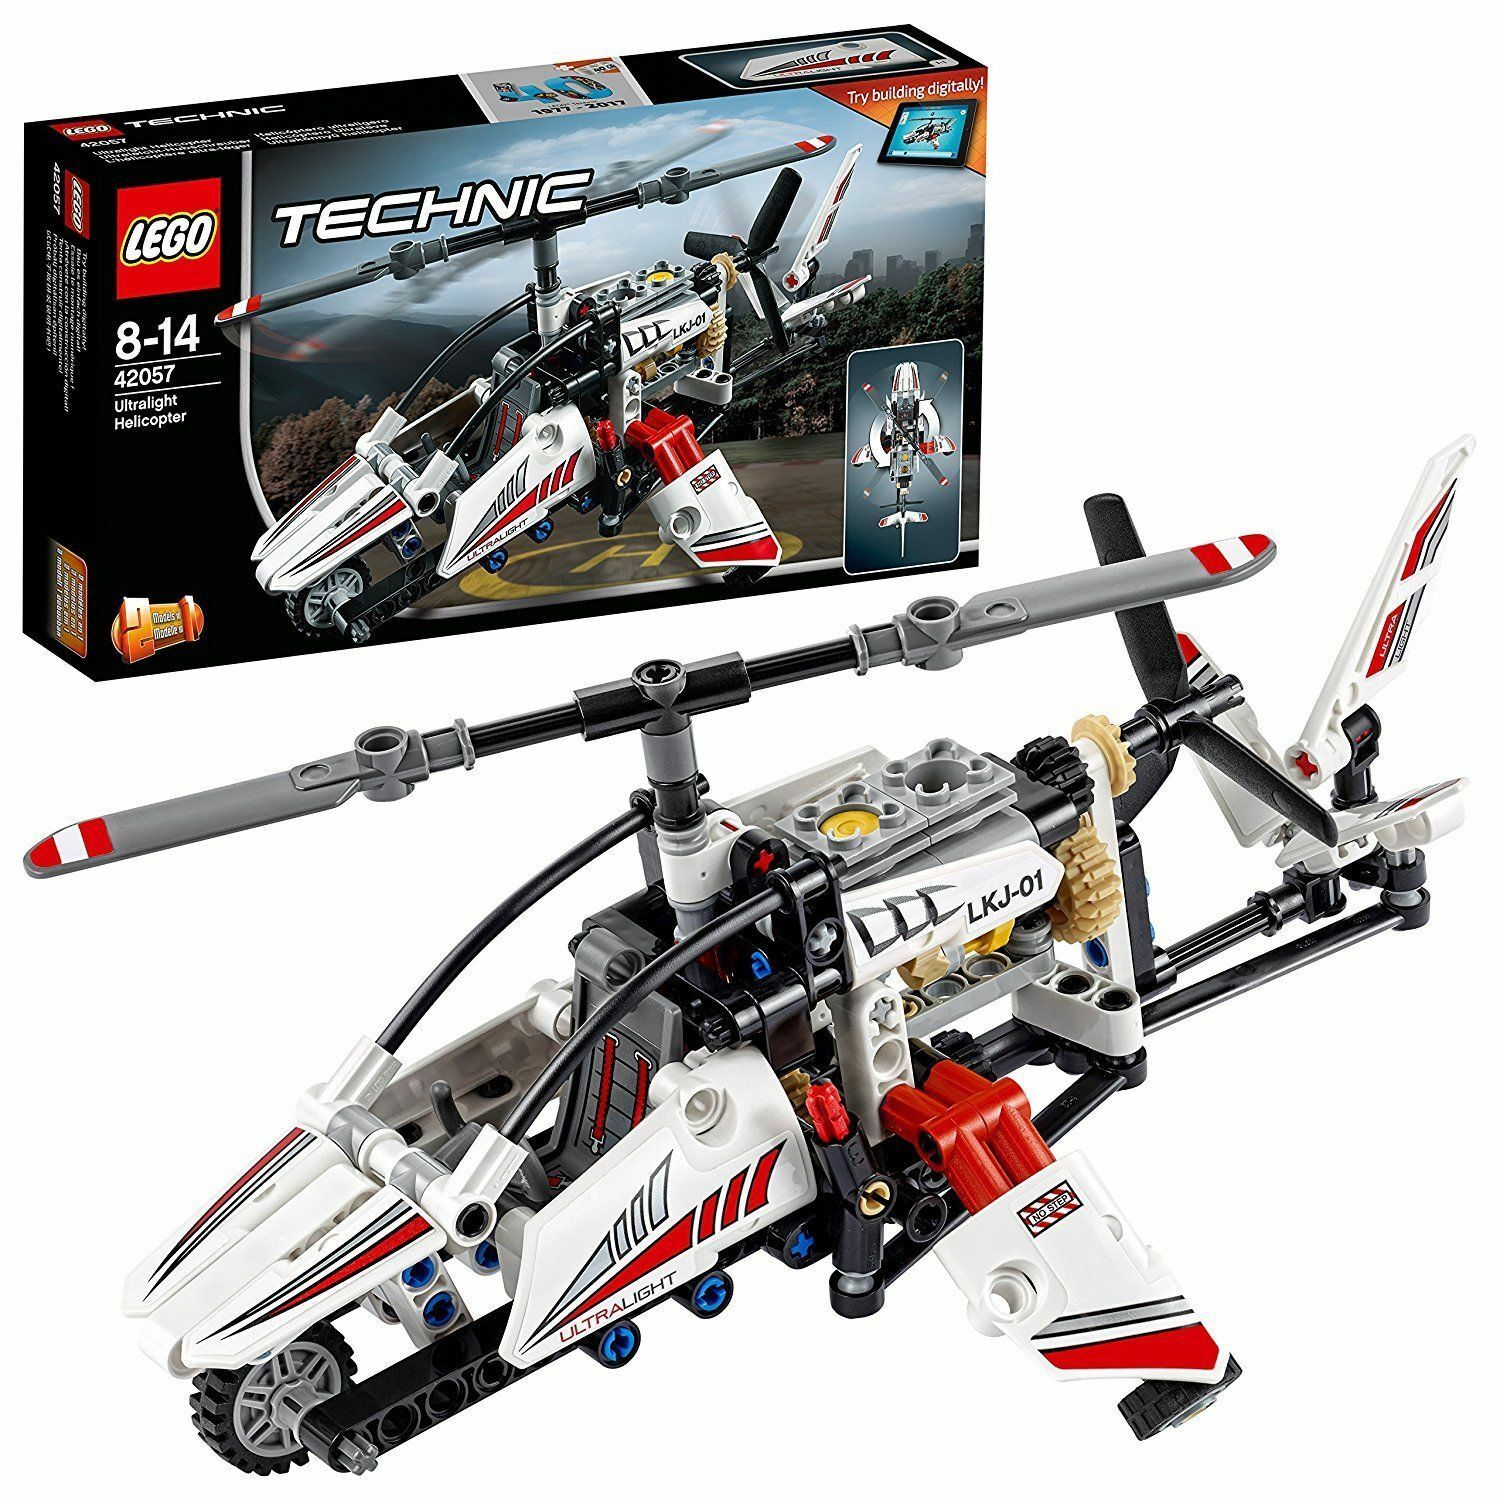 LEGO 42057 TECHNIC ULTRALIGHT HELICOPTER 2 IN 1 SET - Retired Set